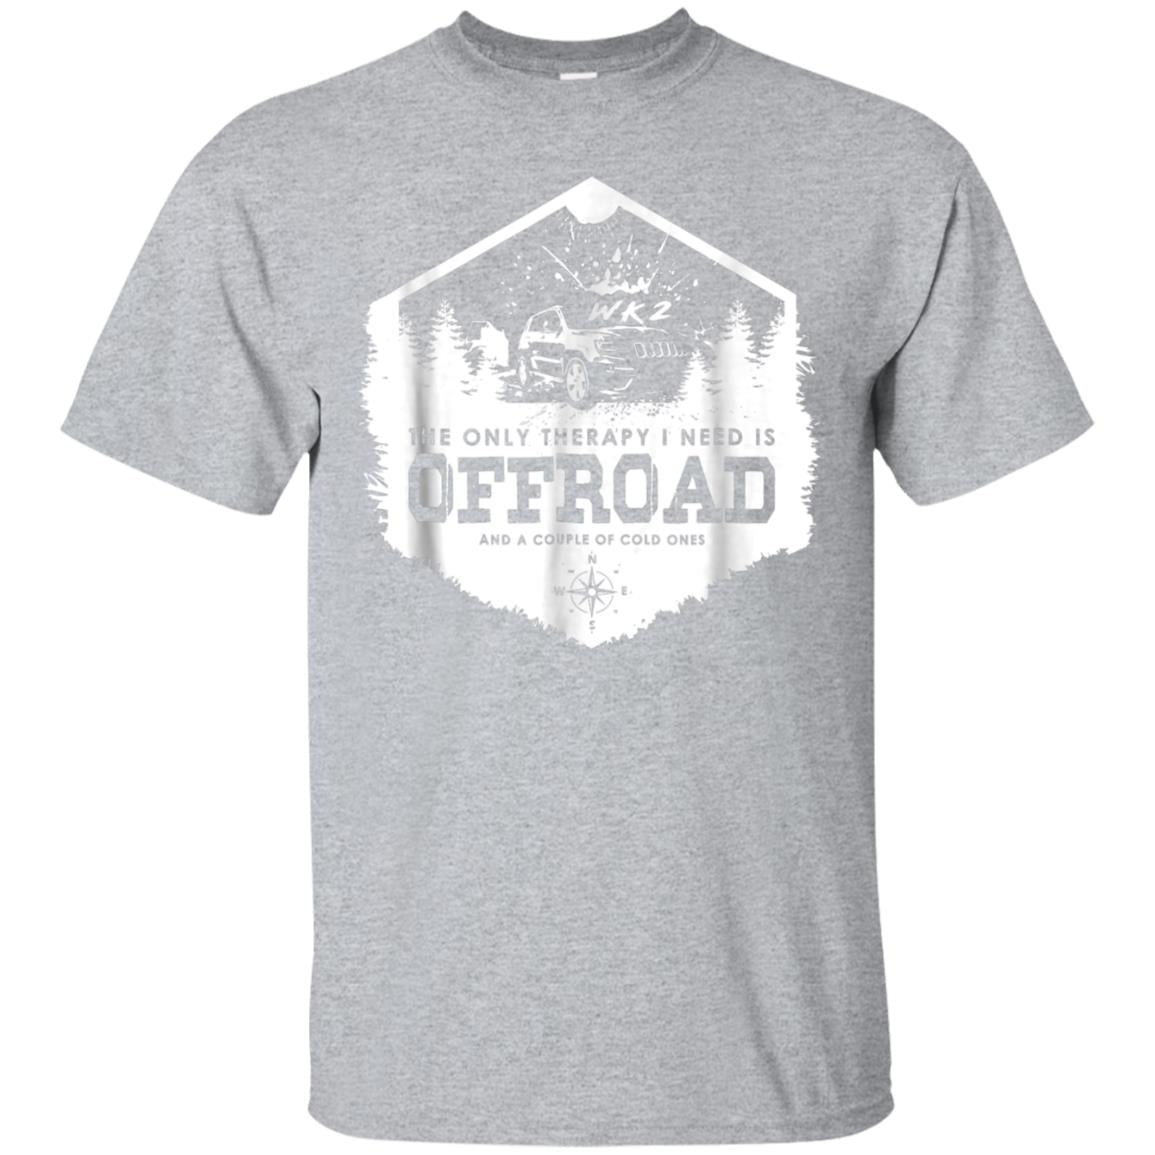 The Only Therapy I Need Is OFFROAD WK WK2 4x4 tshirt 99promocode